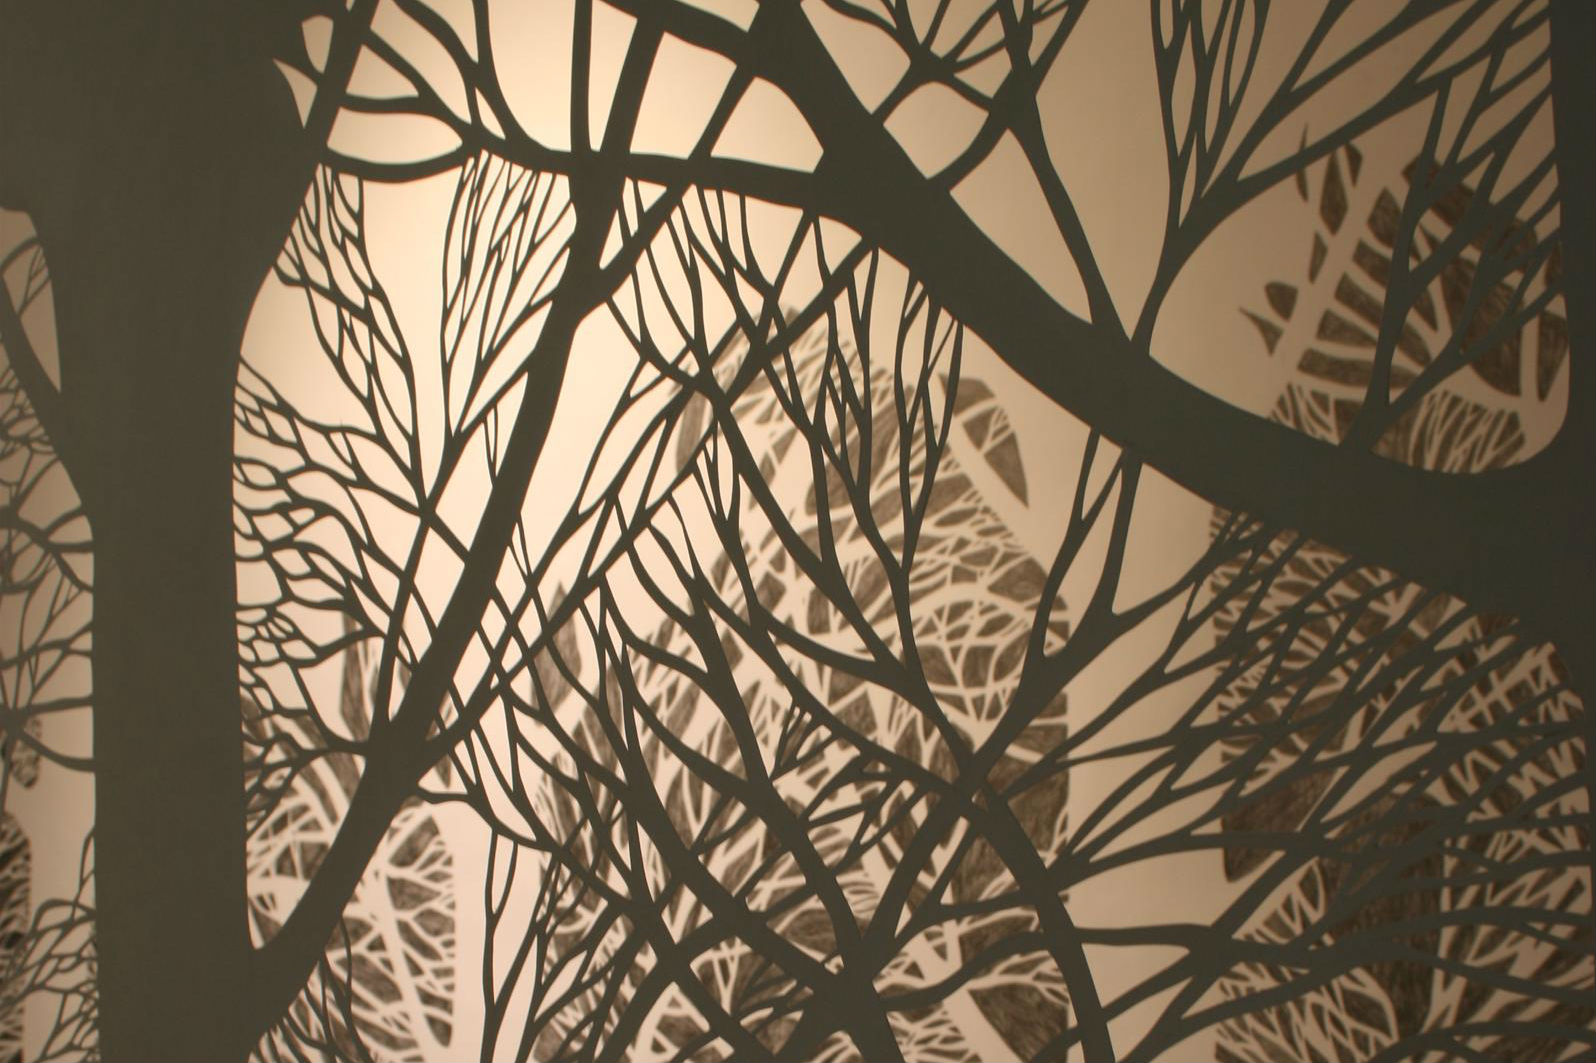 Paper Cutting by Brígh Strawbridge-O'Hagan, who is running a workshop at Crescent Arts Centre, Belfast between 24th - 25th March.